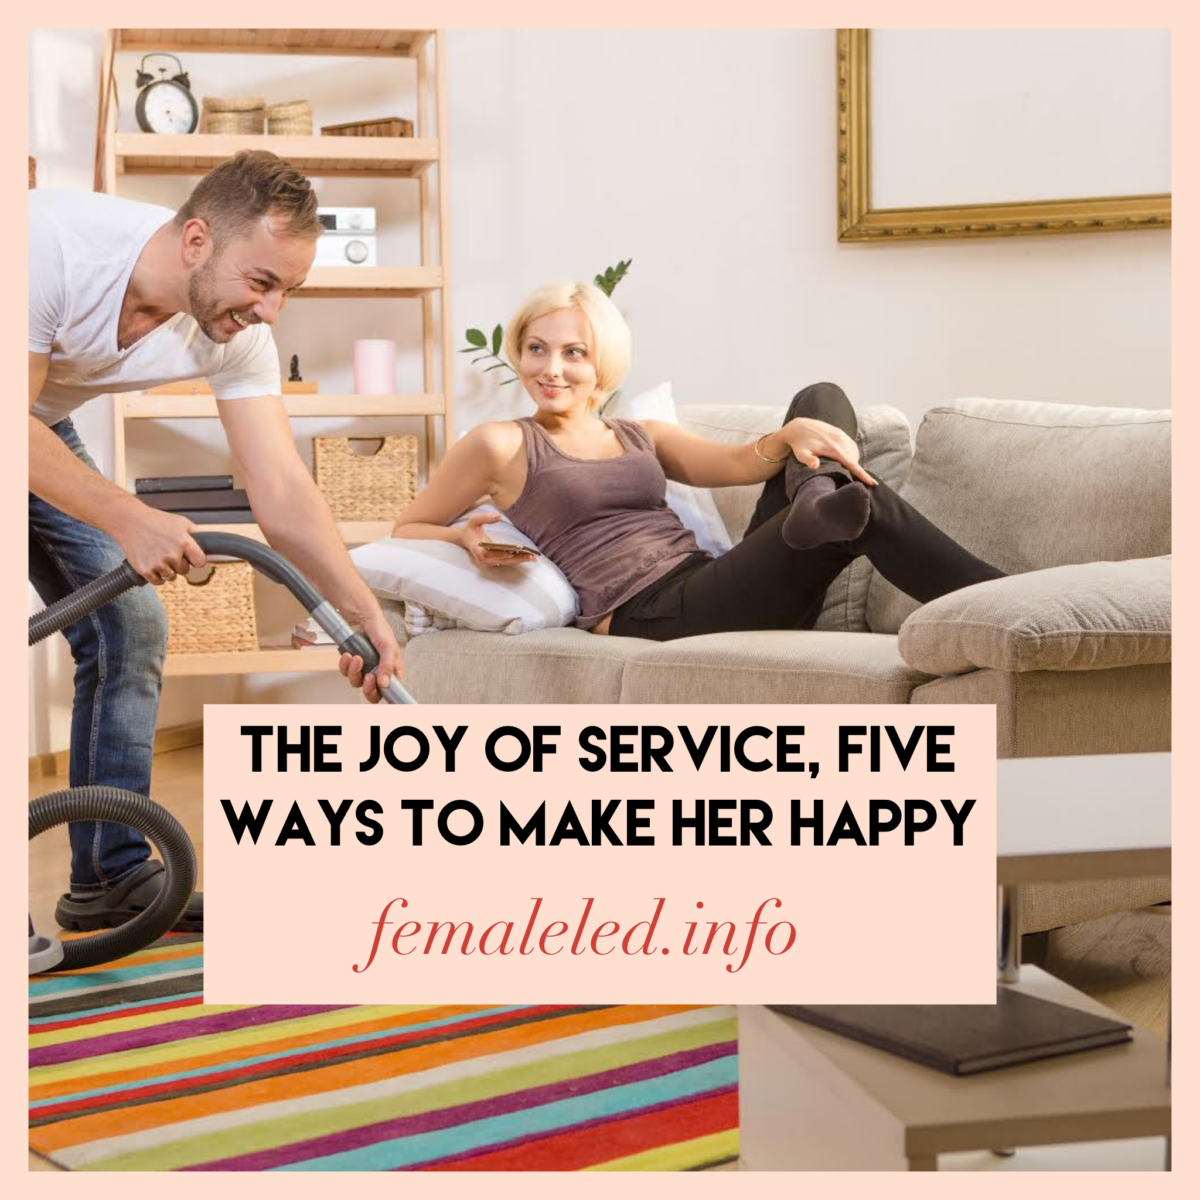 The joy of service, five ways to make the woman in your life happy